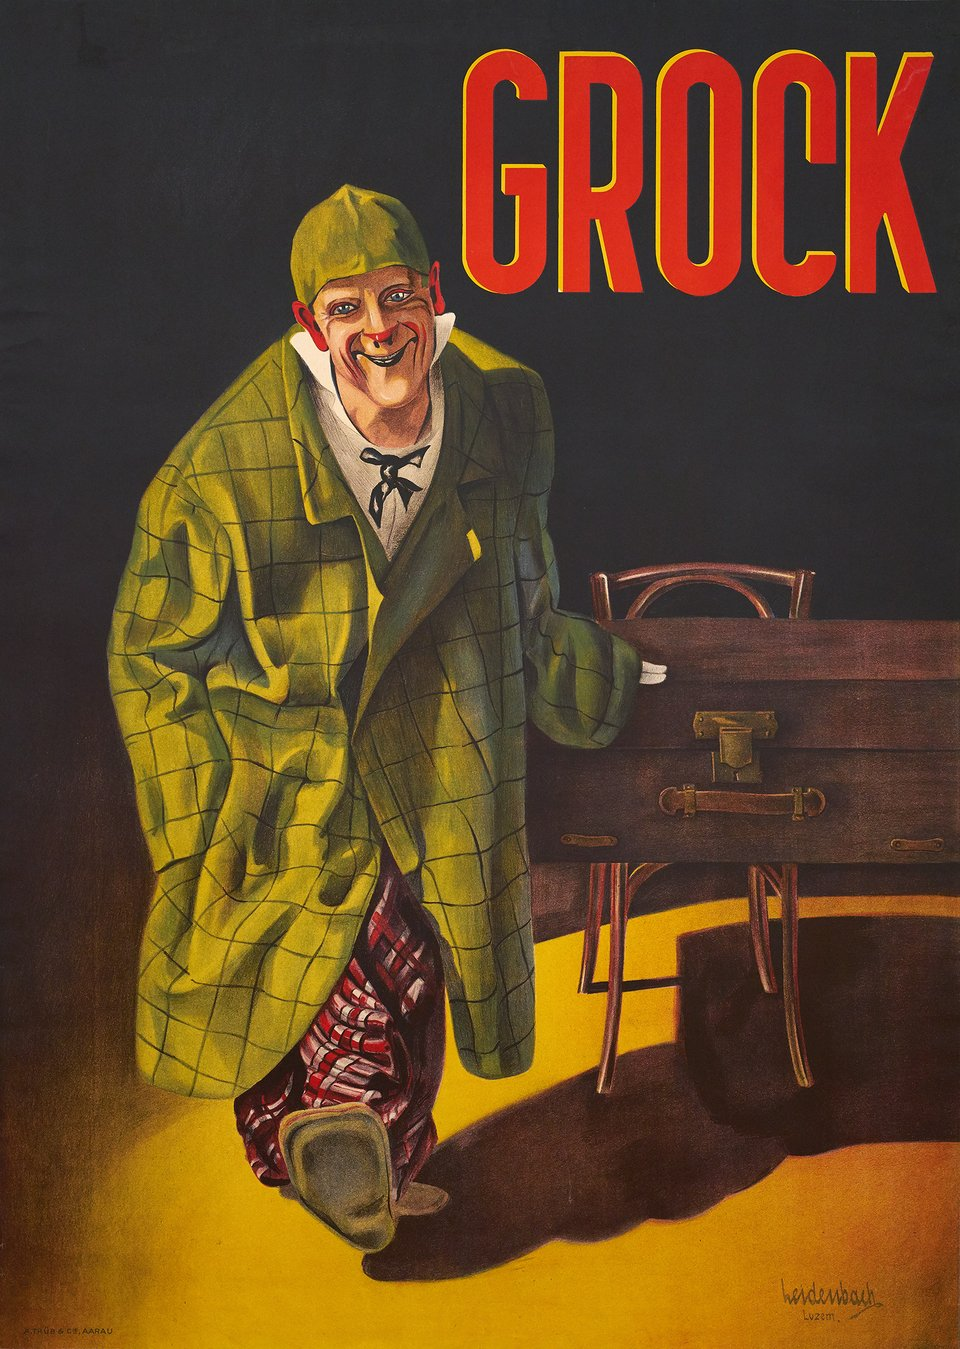 Grock – Vintage poster – Ludwig LEIDENBACH – 1945